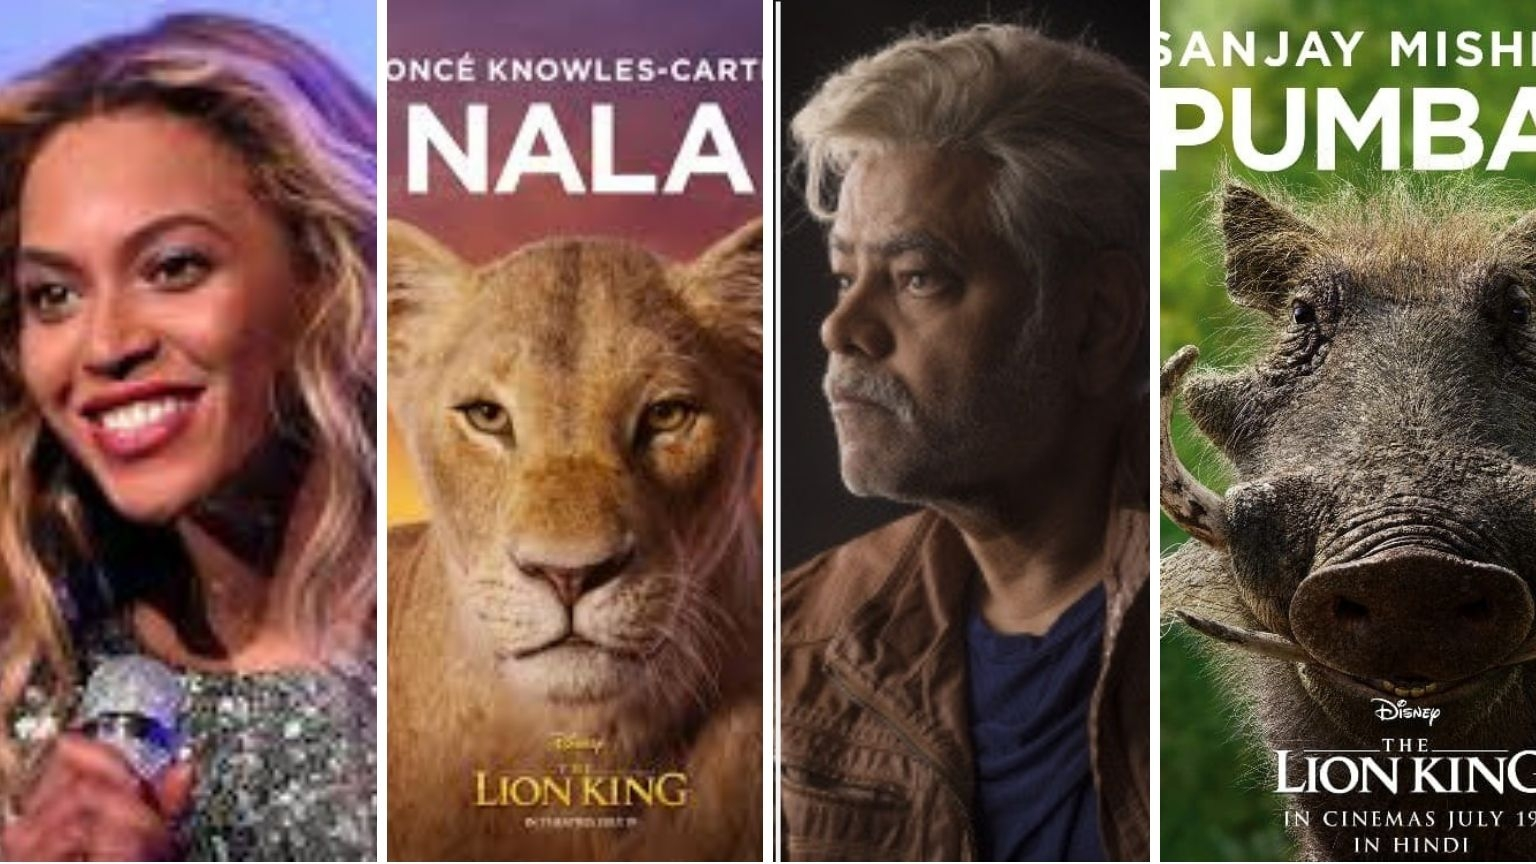 Here's the Voice Cast for The Lion King's Hindi & English Versions